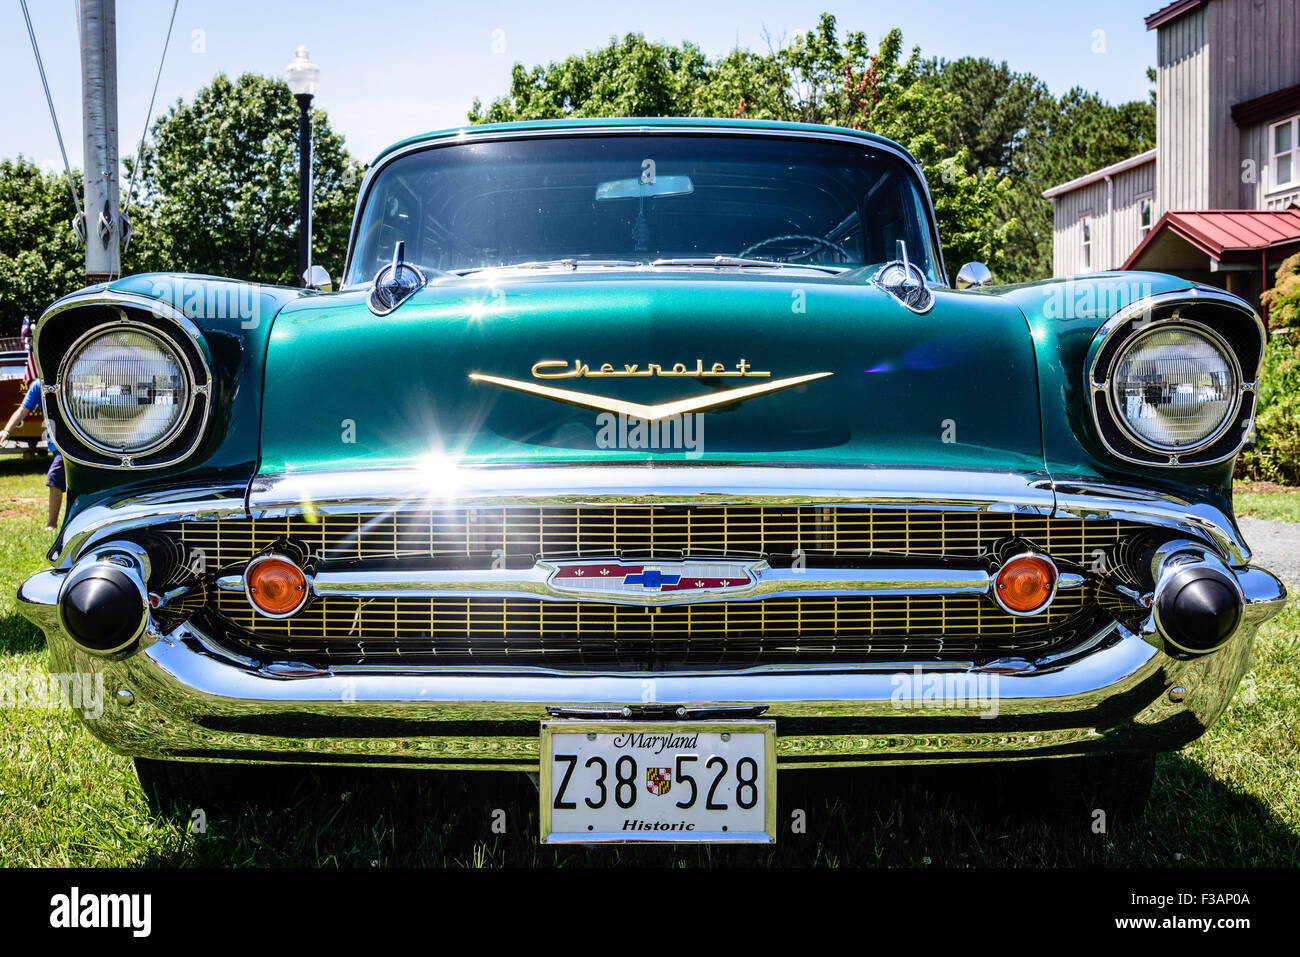 Chevrolet Nomad Stock Photos Images Alamy Bel Air 57 Chevy Tailgate Diagram 1957 Chesapeake Bay Maritime Museum St Michaels Maryland